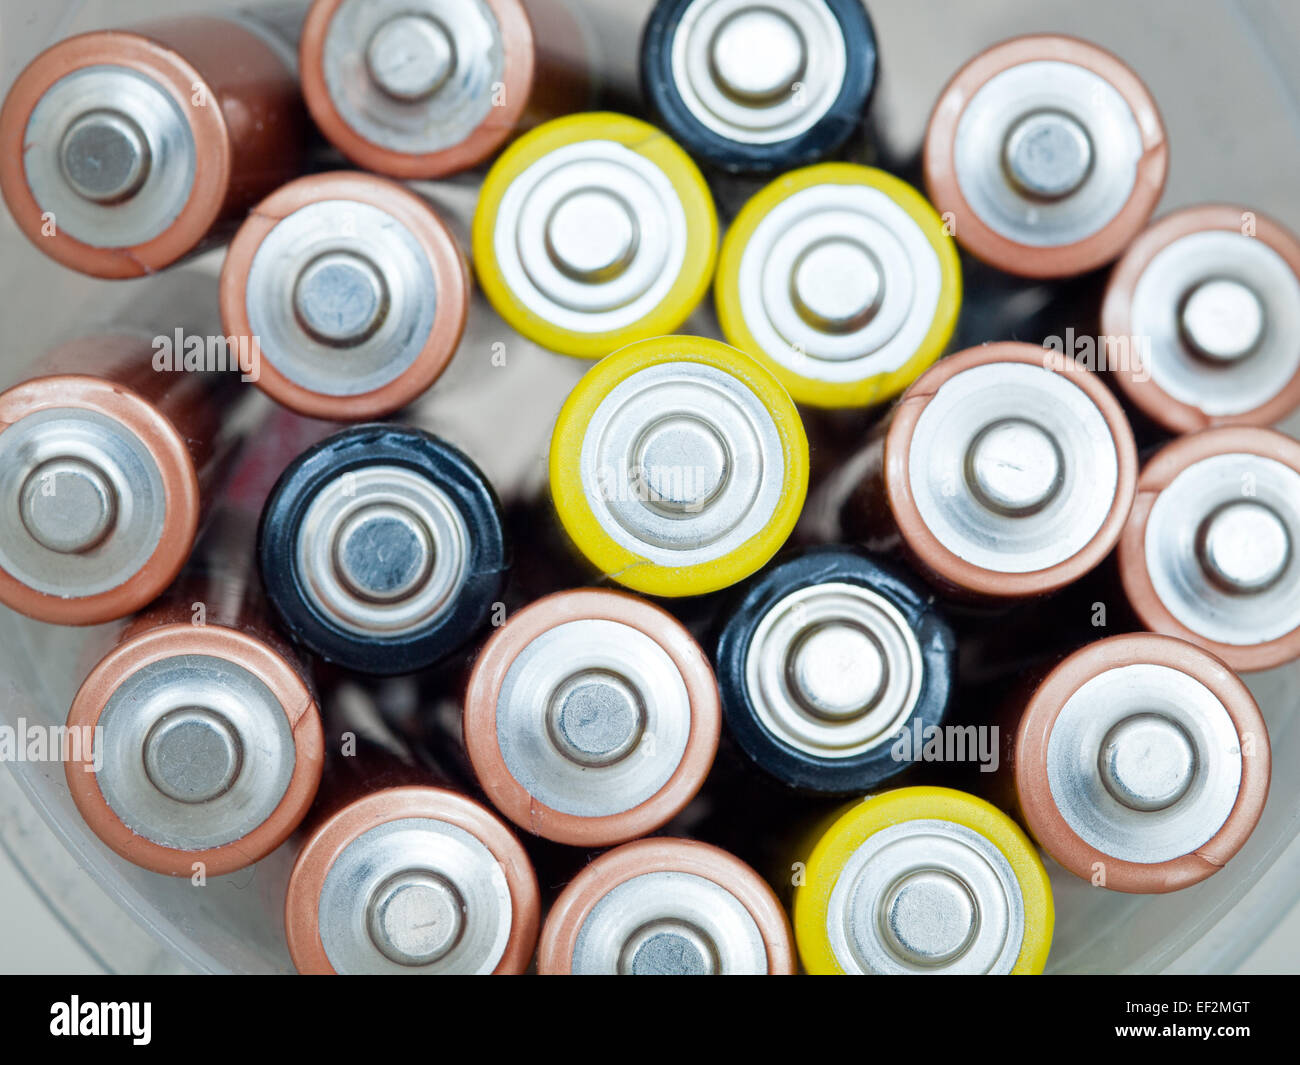 A close-up of used AA (double A) batteries for recycling. - Stock Image